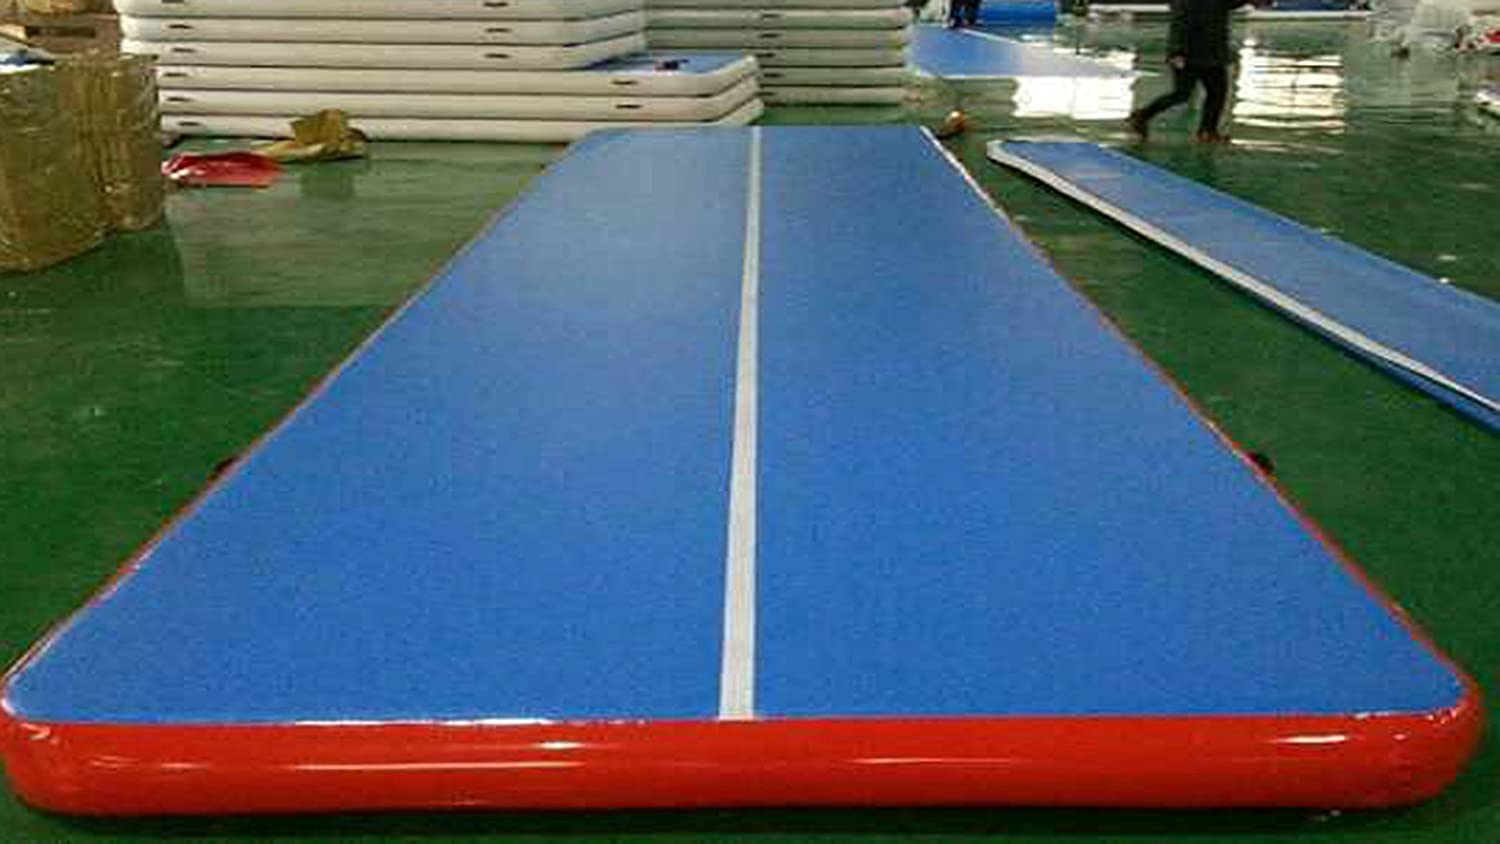 Inflatable Gymnastics Mat 3M 4M 5M 6M Air Tumble Track Thick 10//20CM Tumbling Mat for Home Use,Daily Training,Park